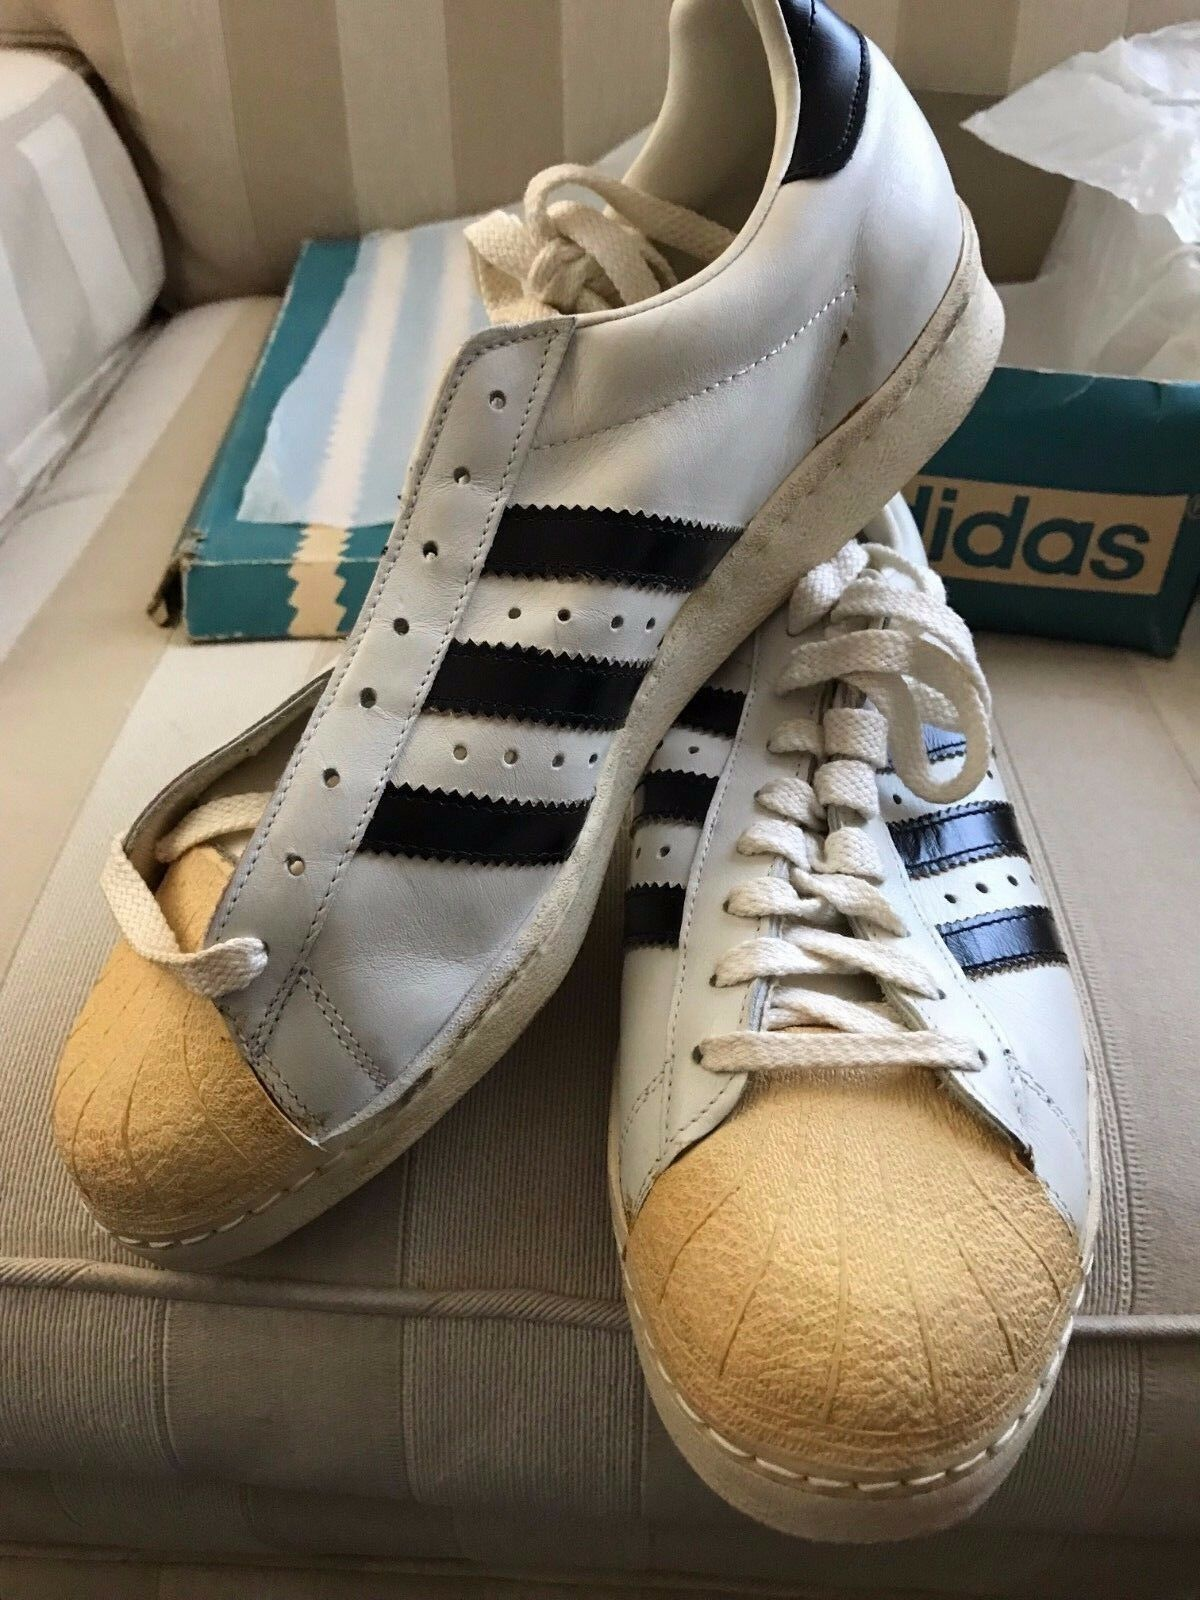 Adidas Superstar Men's US Size 11 Vintage 1972 NOS w/ Orig Box - THE REAL DEAL